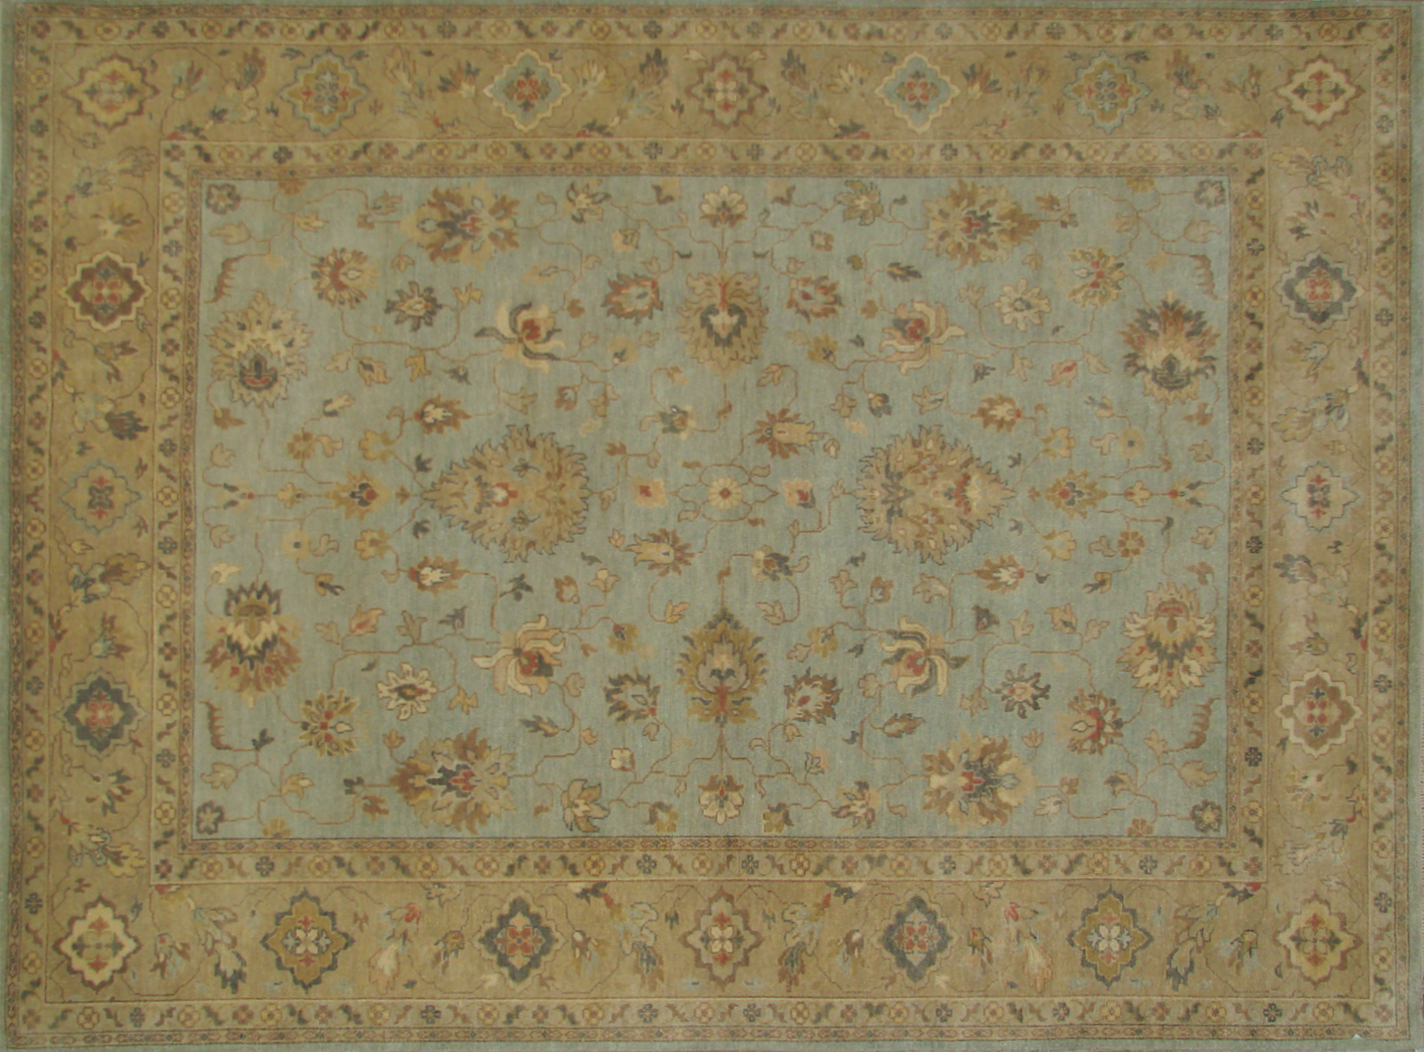 9x12 Traditional Hand Knotted Wool Area Rug - MR19920